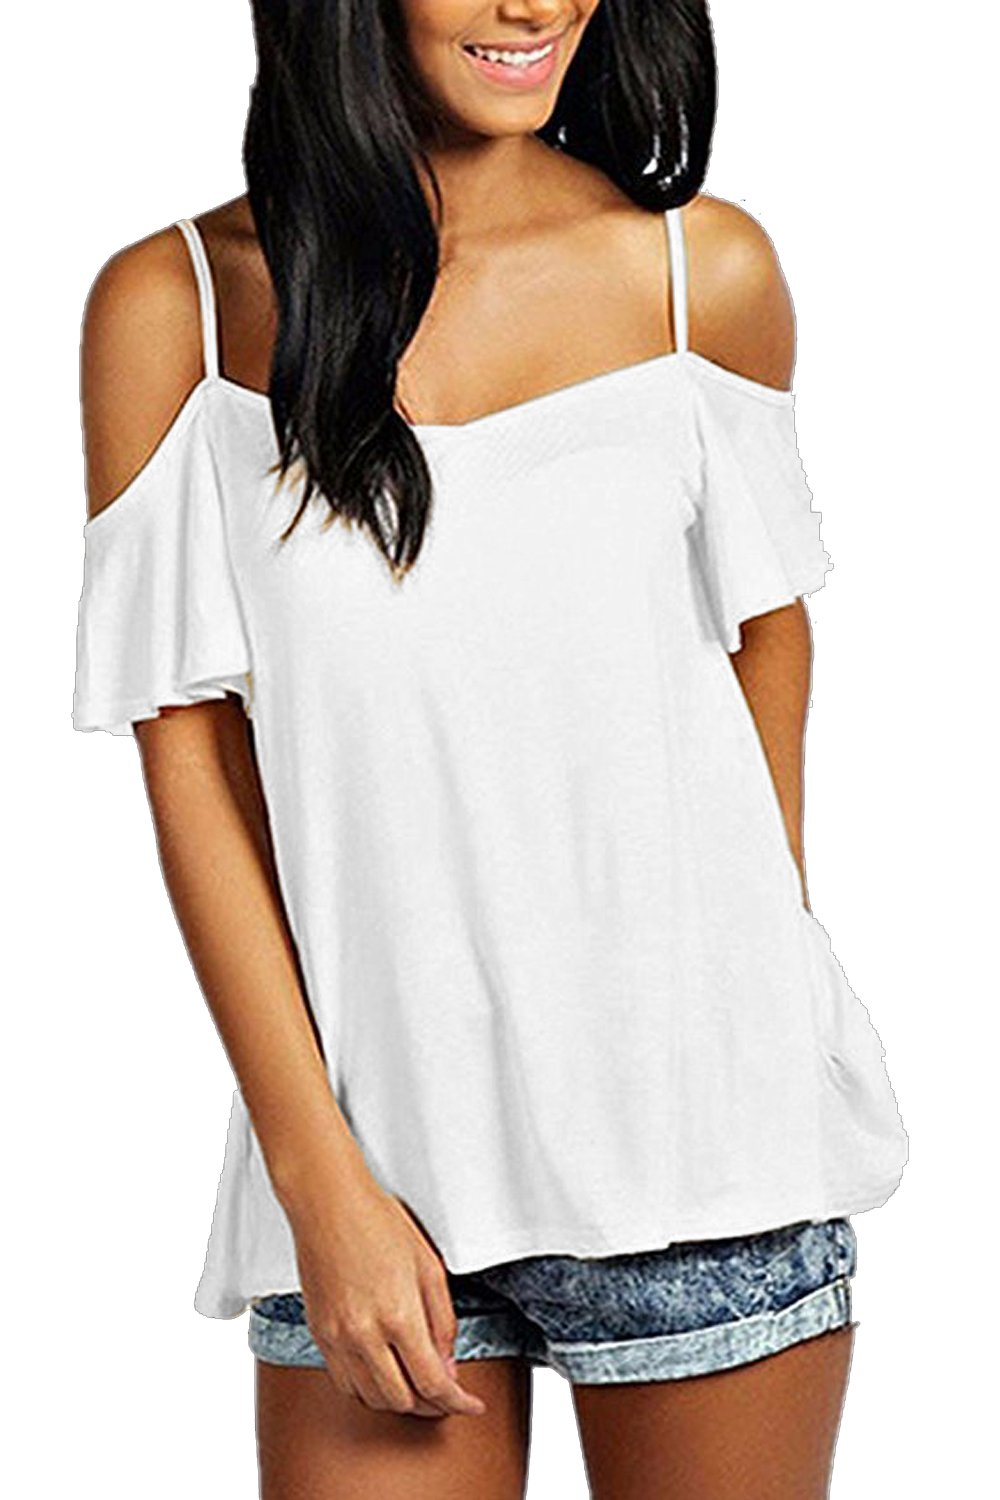 FISOUL Women's Off Shoulder Top Ruffle Sleeve Spaghetti Strap Halter Tops, White, Medium